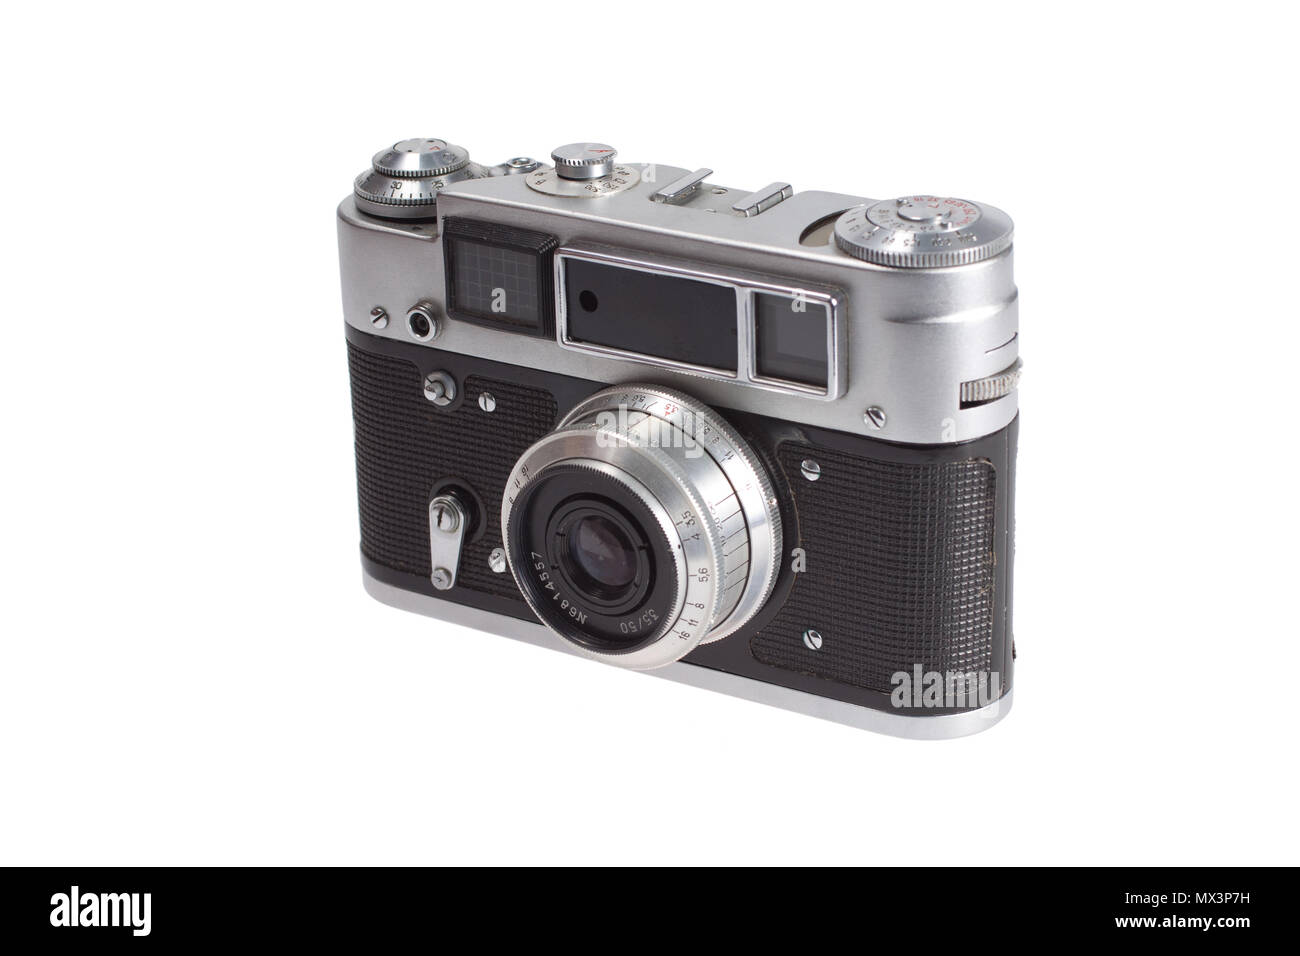 Rangefinder camera with old style  exponometr isolated on white background - Stock Image